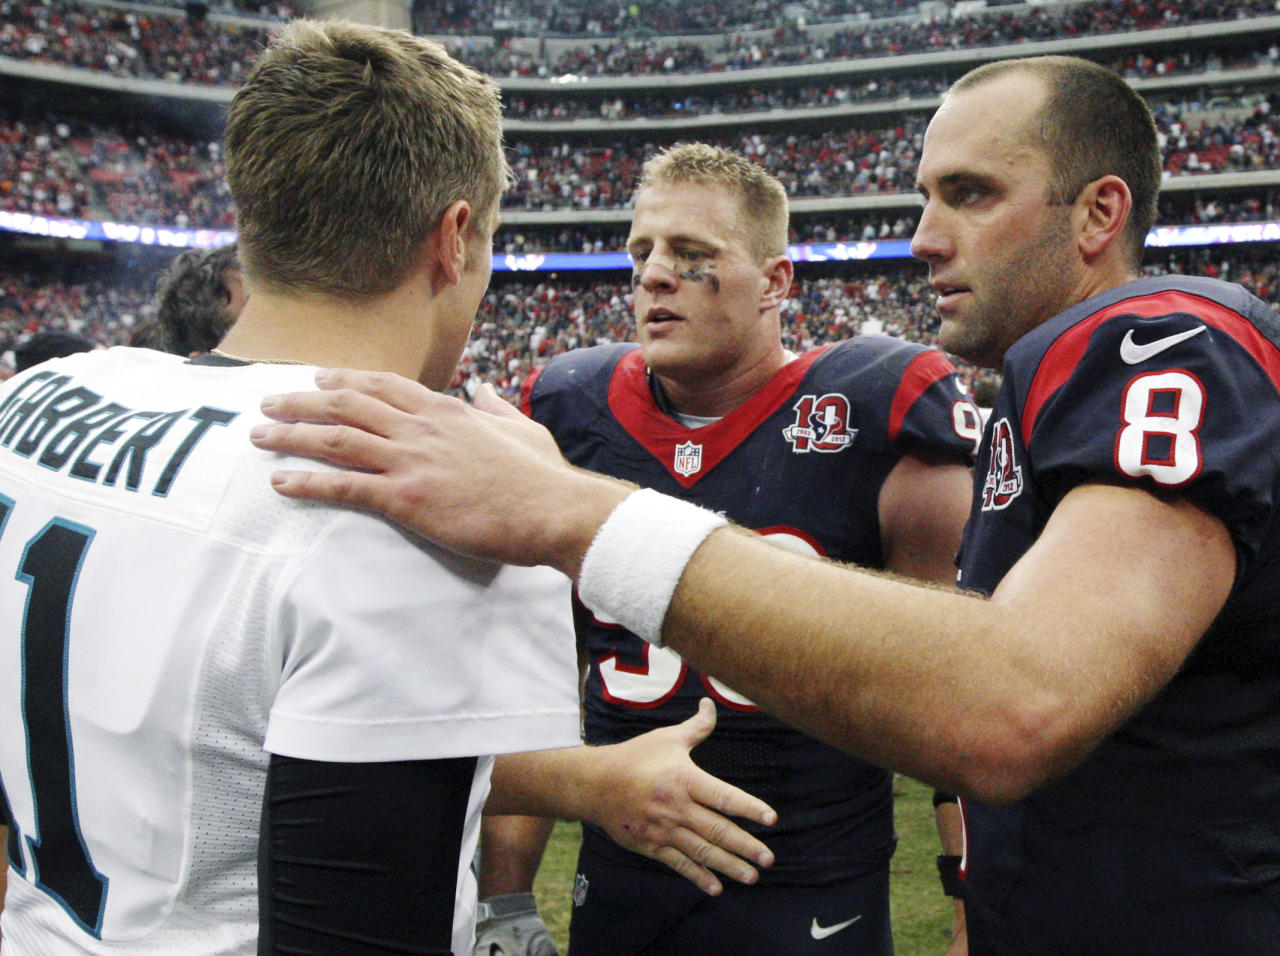 Jacksonville Jaguars quarterback Blaine Gabbert (11) greets Houston Texans quarterback Matt Schaub (8) and J.J. Watt (99) after the Texans defeated the Jaguars 43-37 in overtime of an NFL football game, Sunday, Nov. 18, 2012, in Houston. Gabbert was injured in the first quarter and did not play the rest of the game. (AP Photo/Patric Schneider)